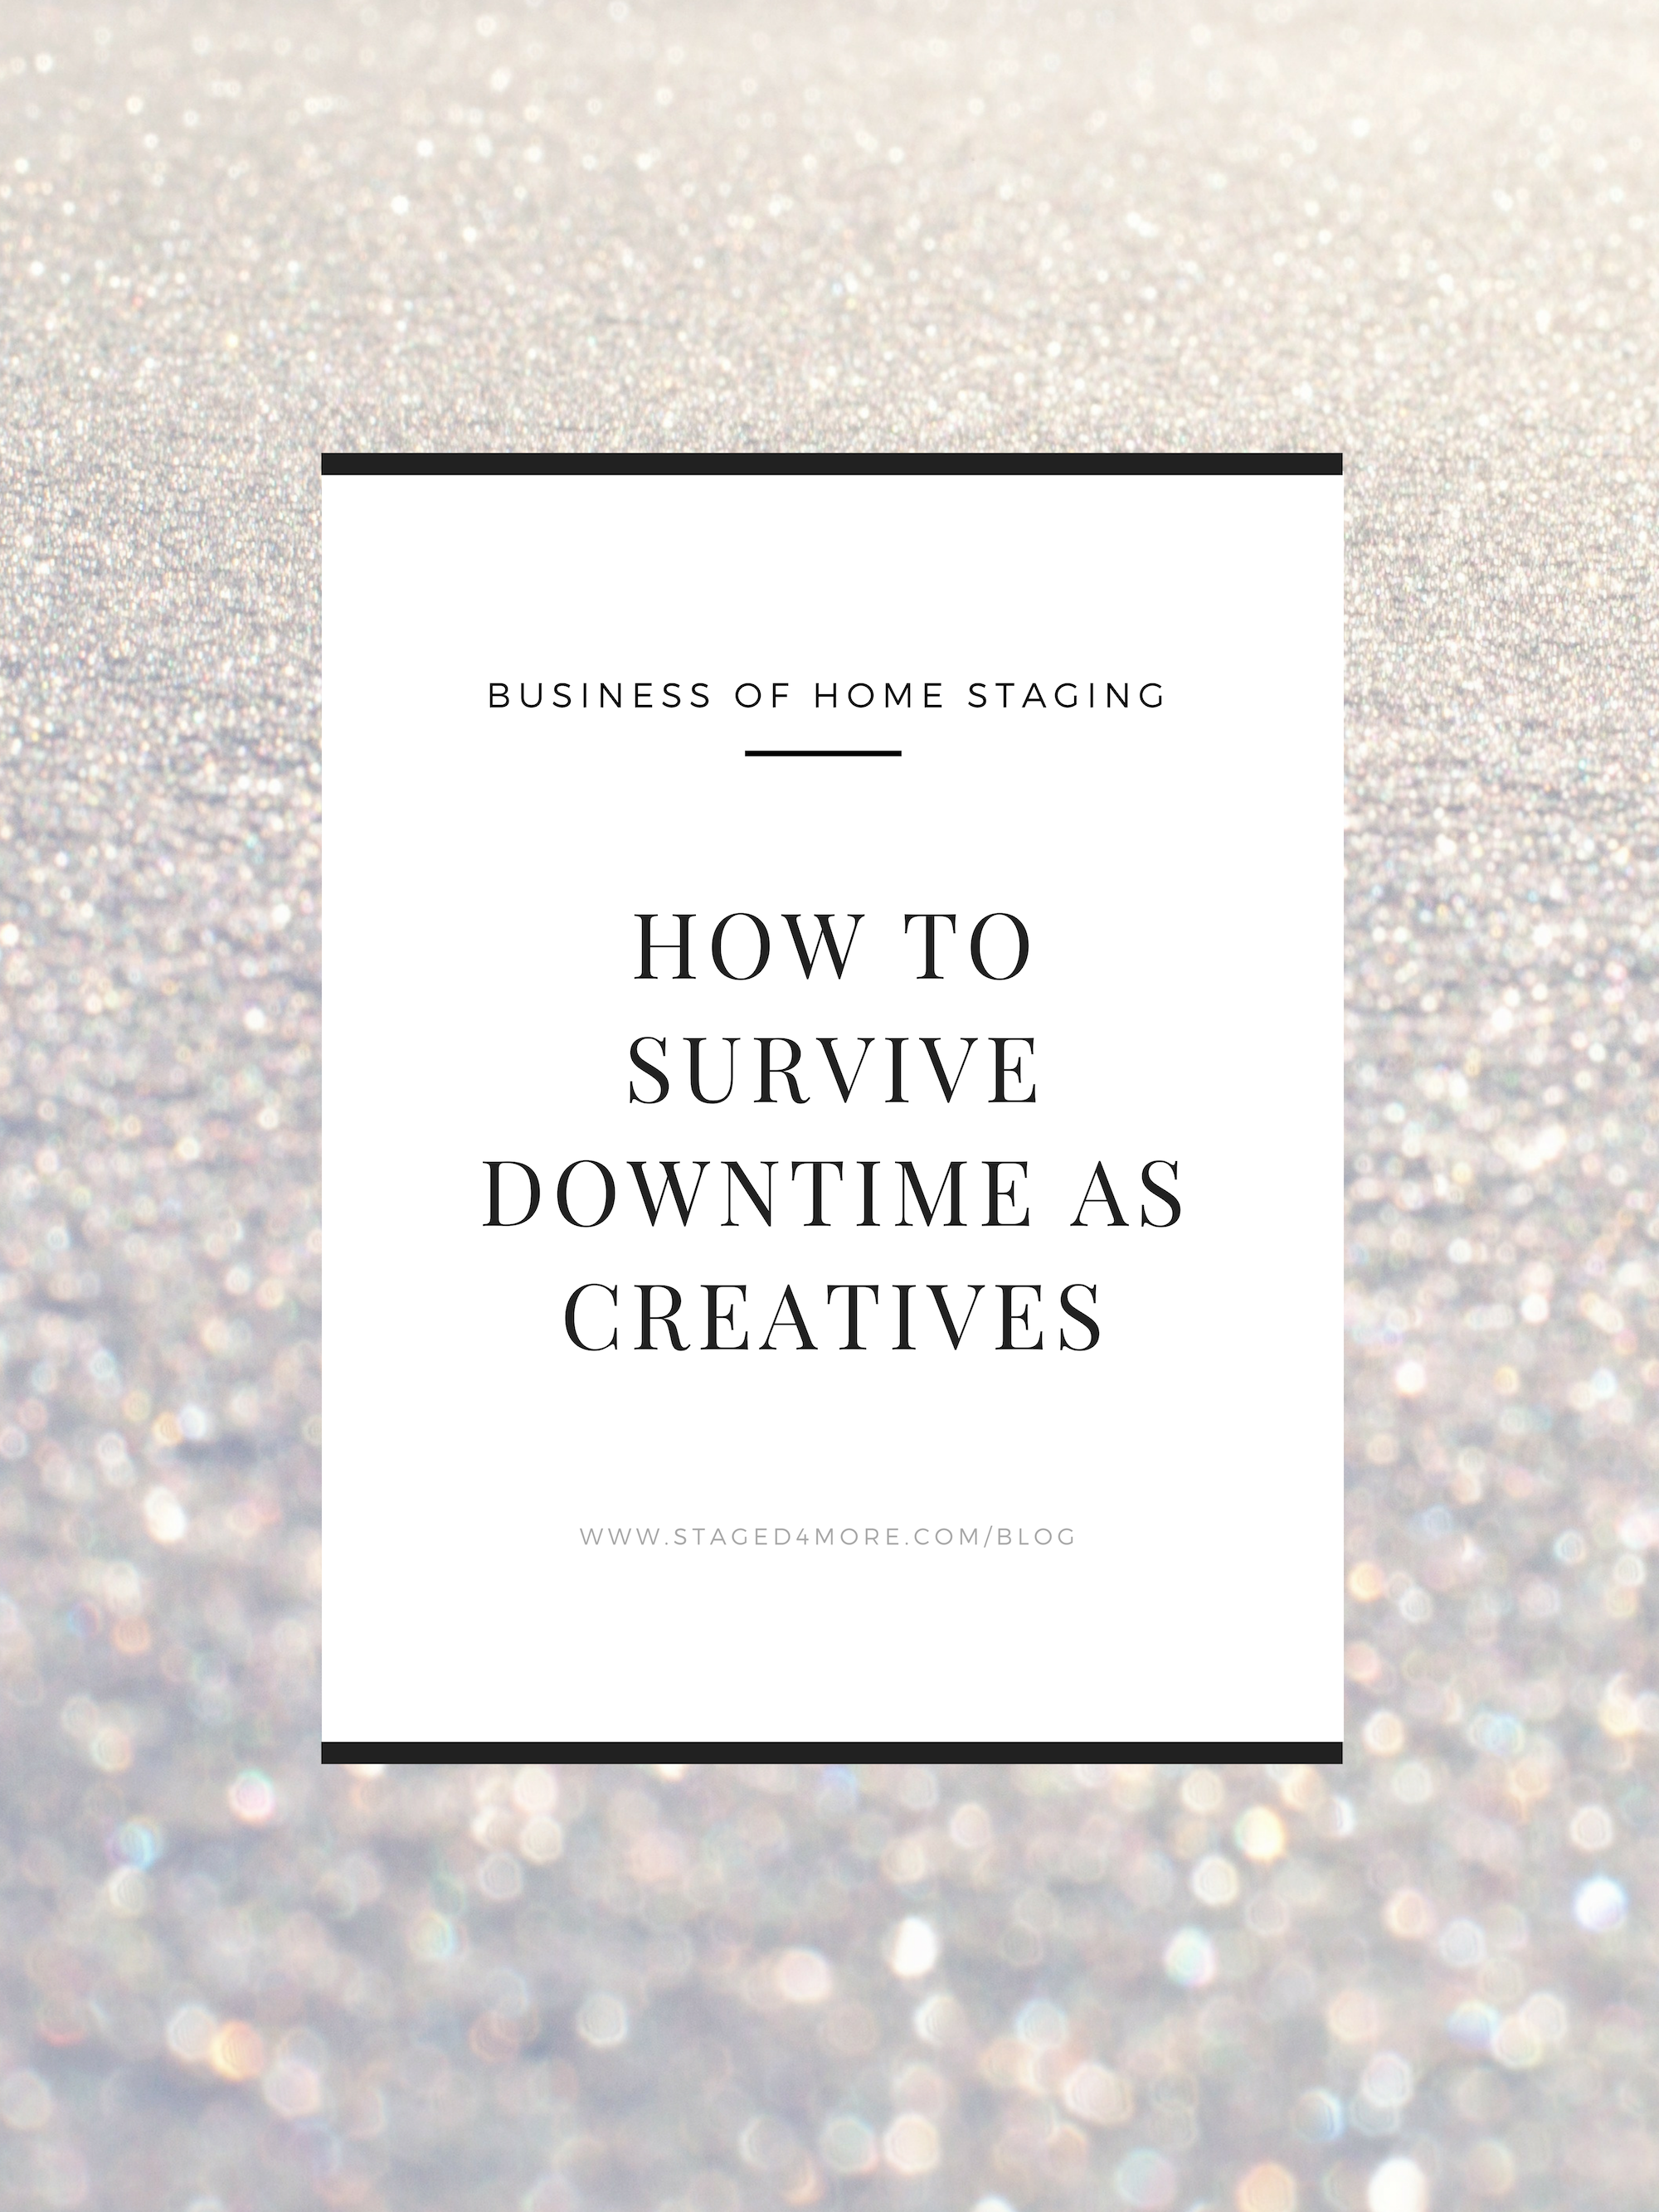 How to Survive During Downtime as Home Stagers   Staged4more School of Home Staging